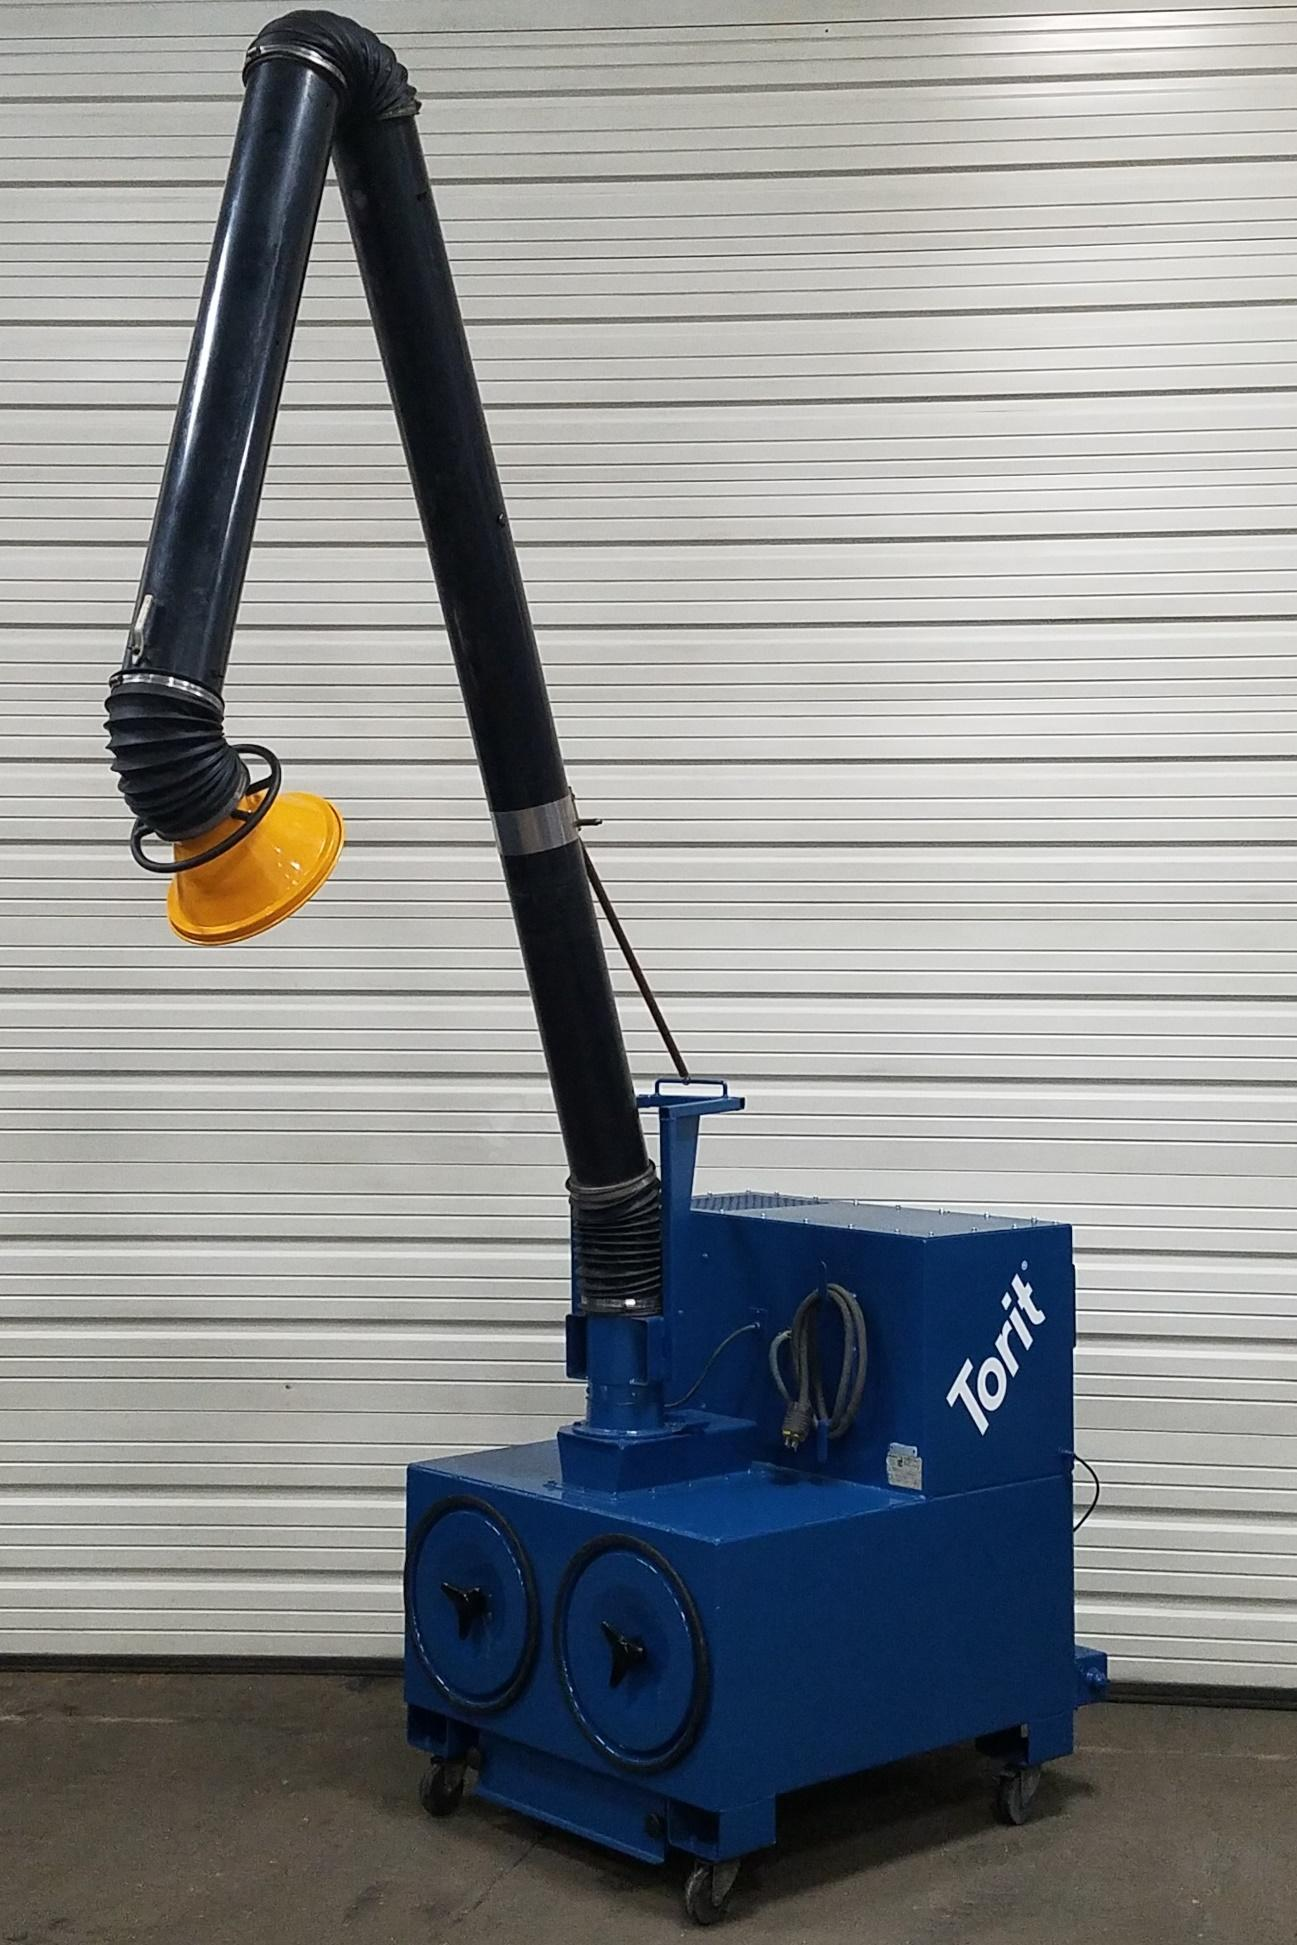 1,100 cfm Donaldson Torit #PCPT-1100 Portable Dust Collector